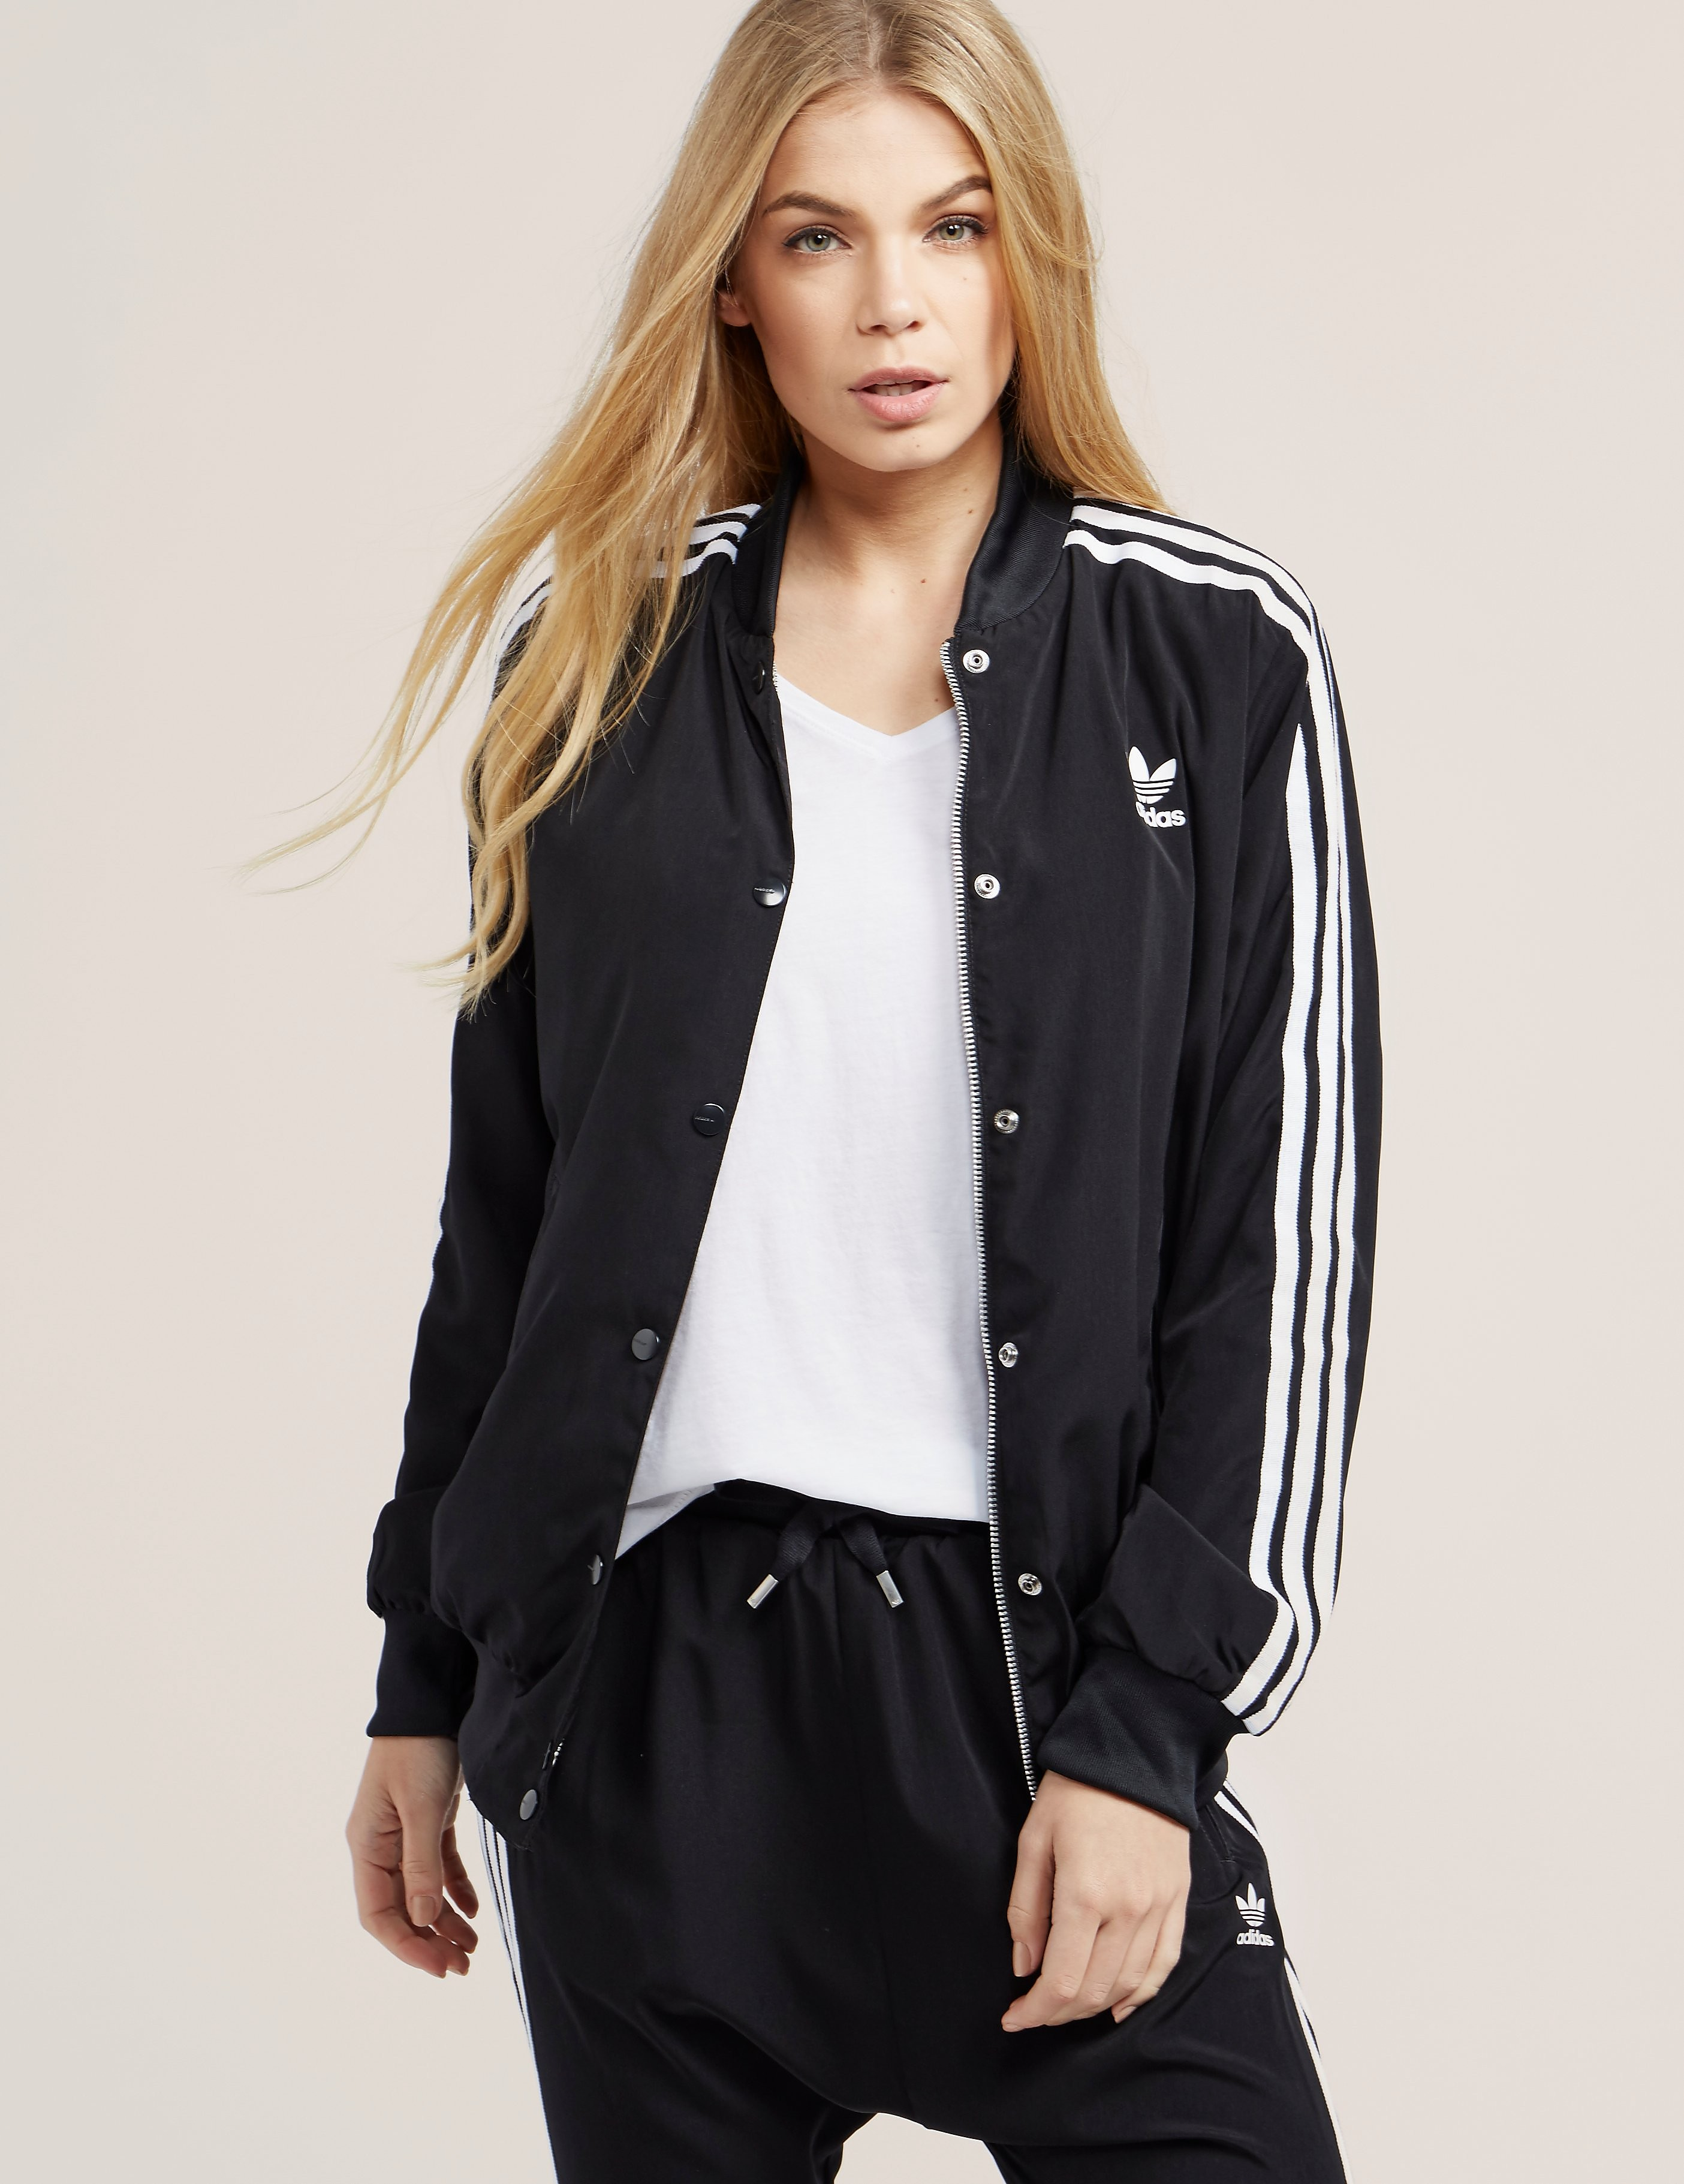 adidas Originals 3-Stripes Bomber Jacket